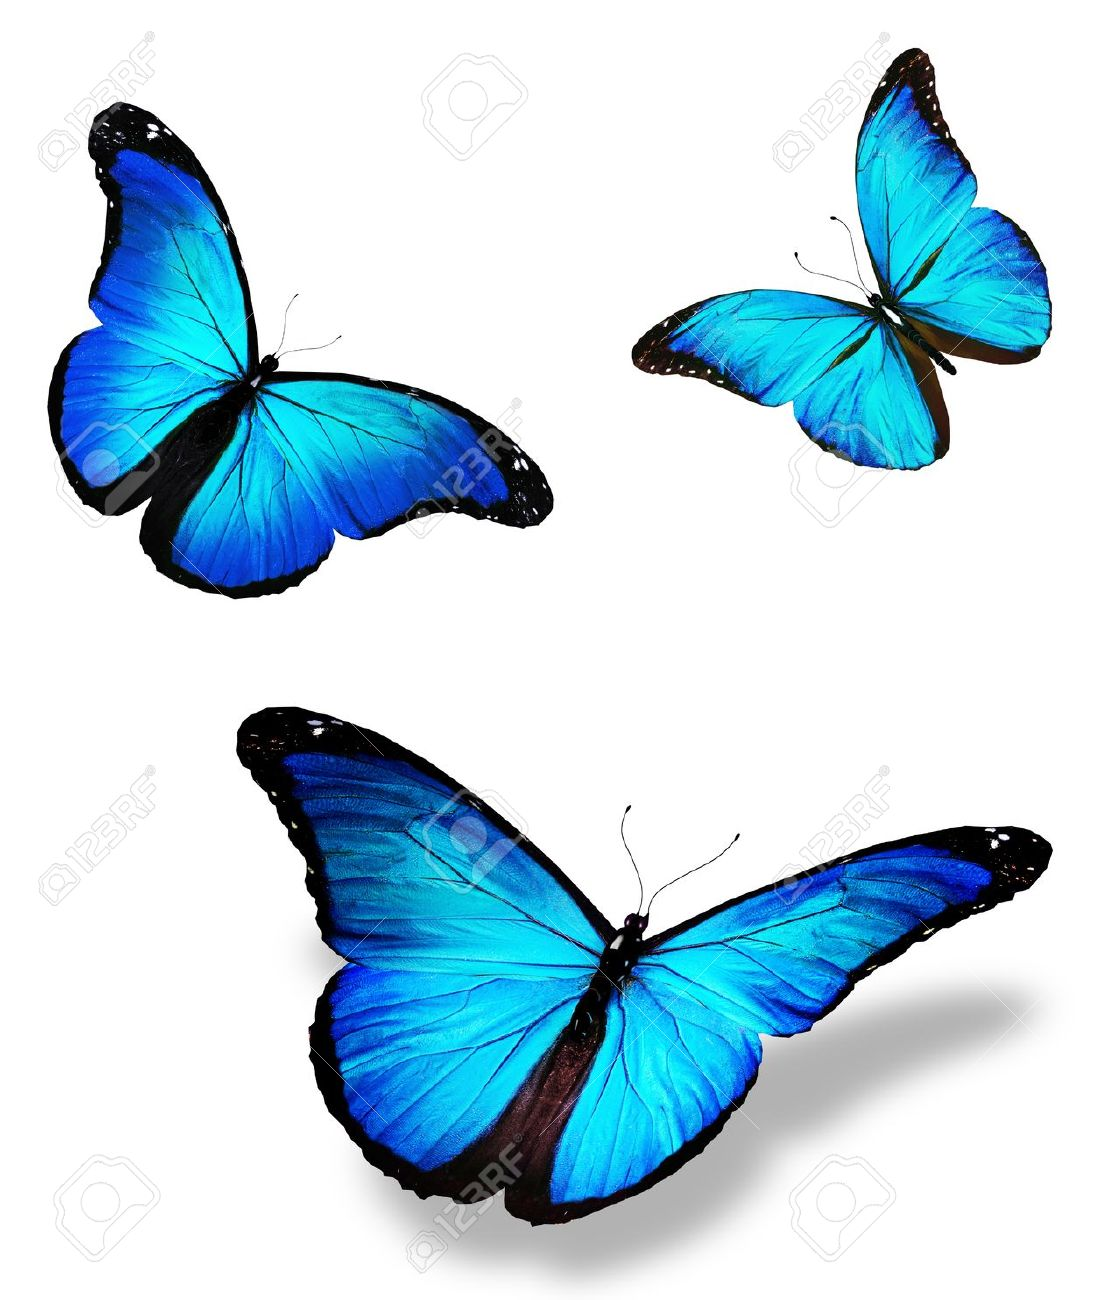 butterfly hd png transparent butterfly hd png images clipart of butterfly on finger clip art of butterflies and flowers